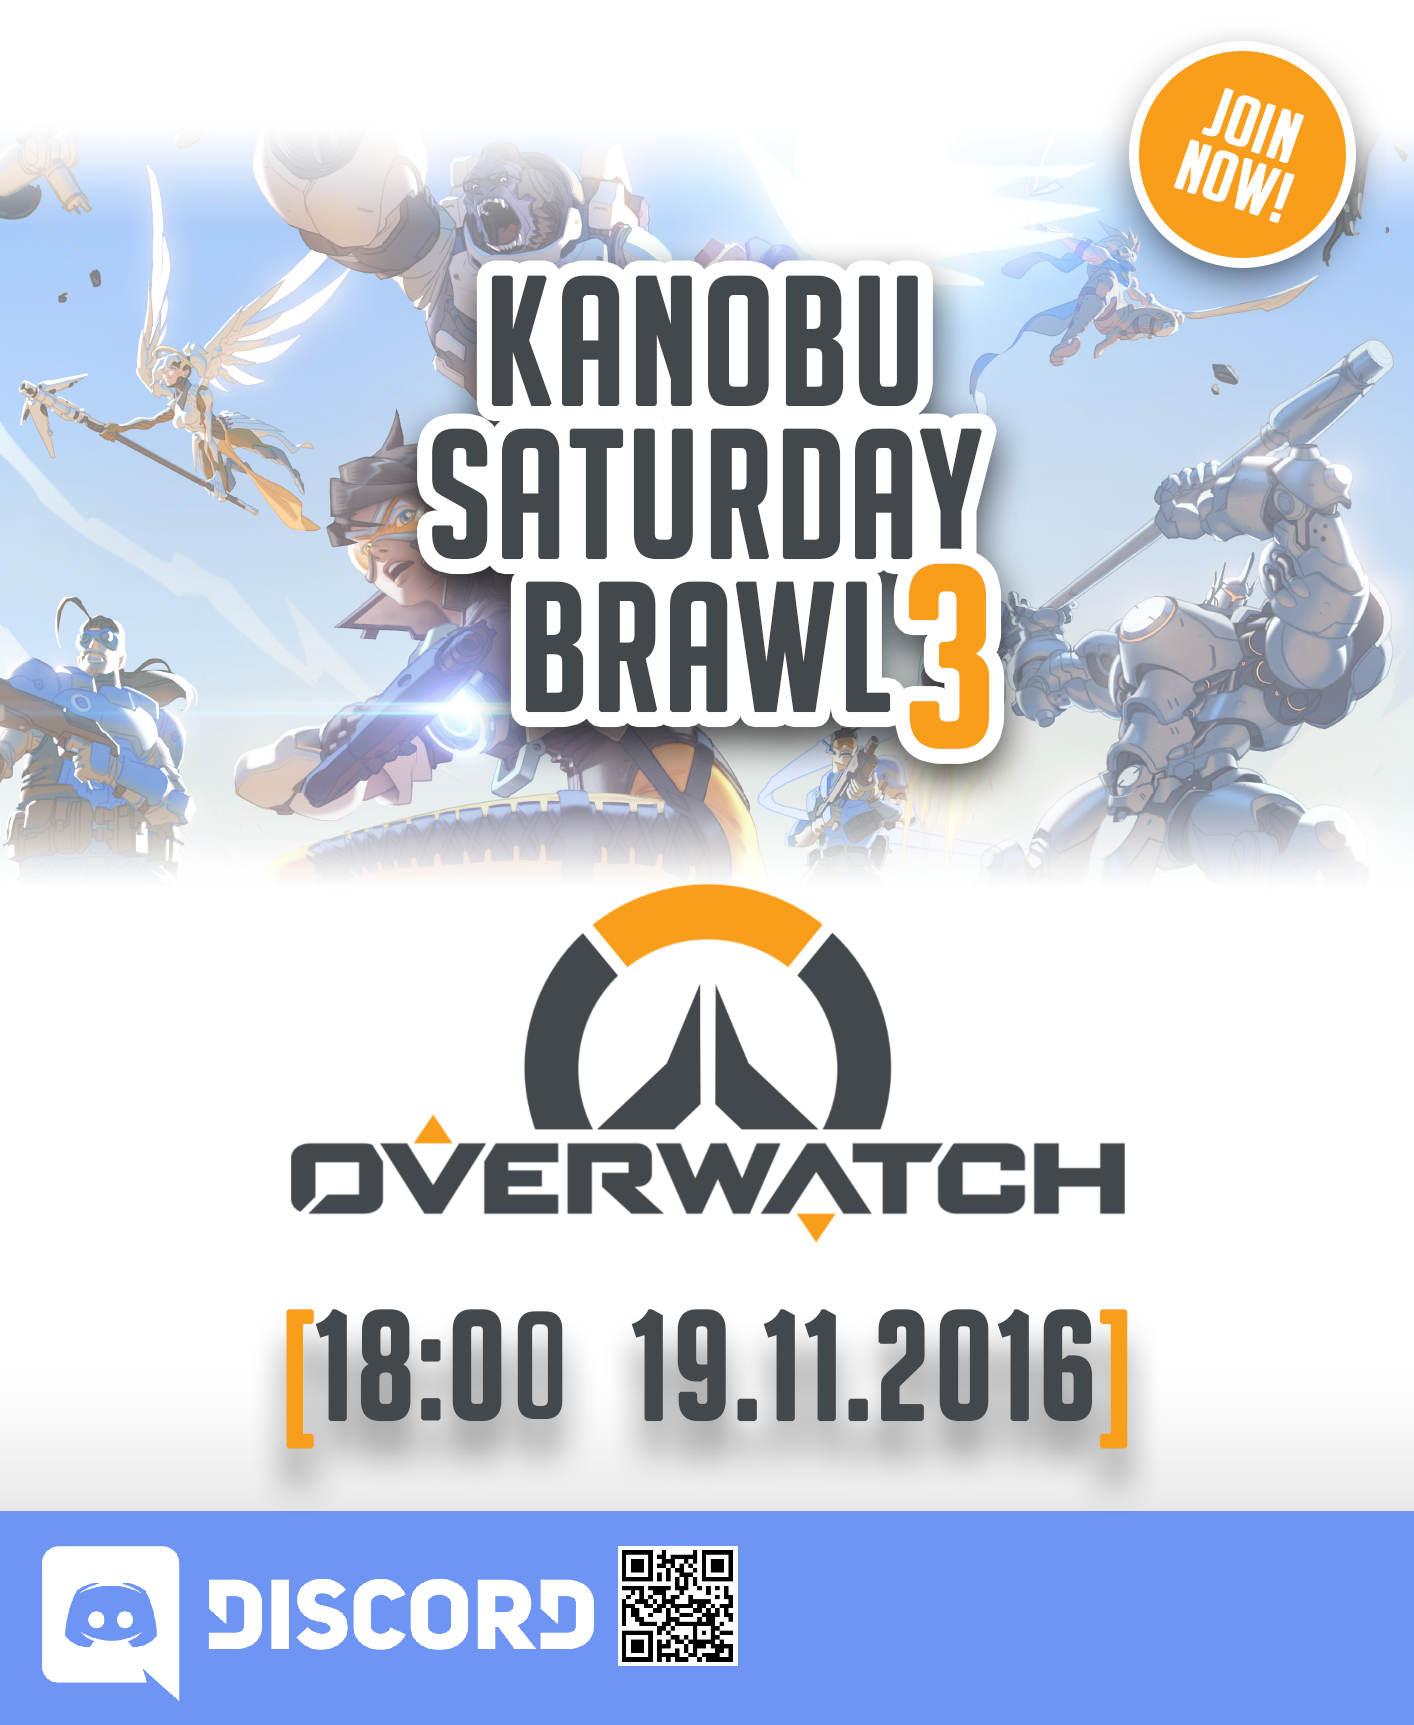 Kanobu saturday brawl 3: Overwatch - Изображение 1